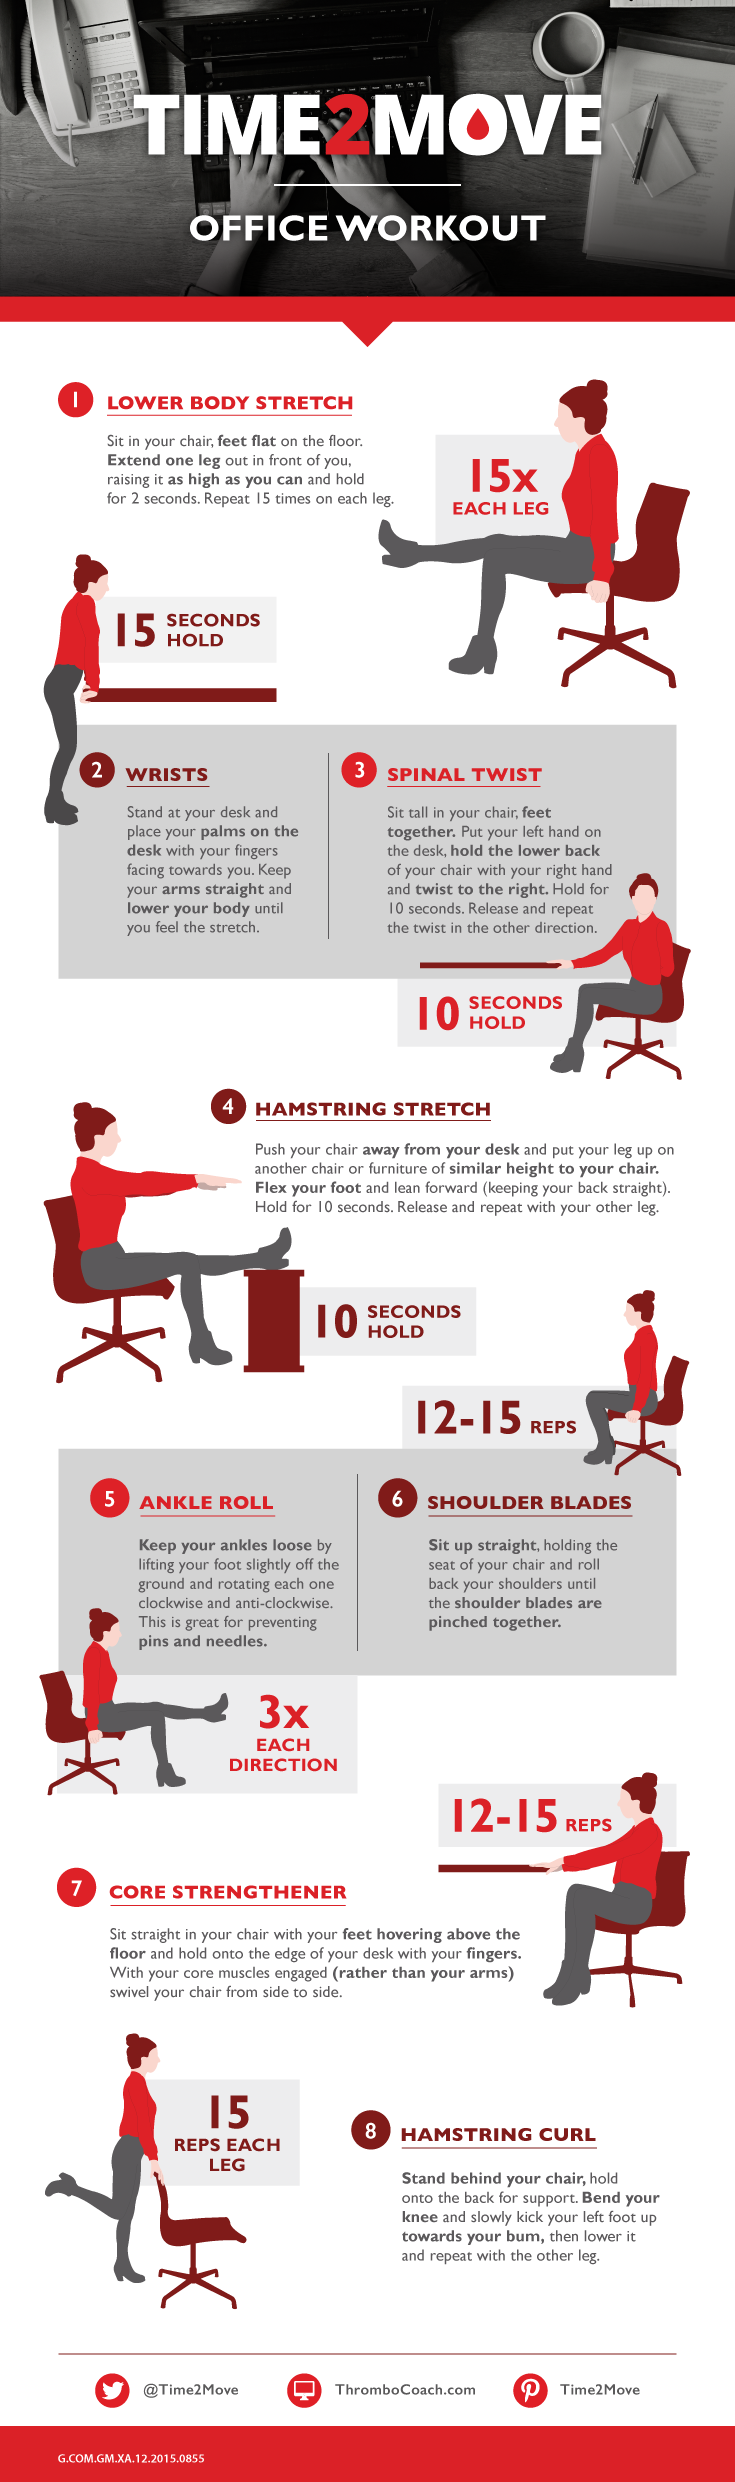 How Office Yoga Can Improve Well Being The Office Doesnu0027t Just Have To Be  For Work; It Can Be For A Workout Too. All You Need Is Your Chair, Your Desk  And ...